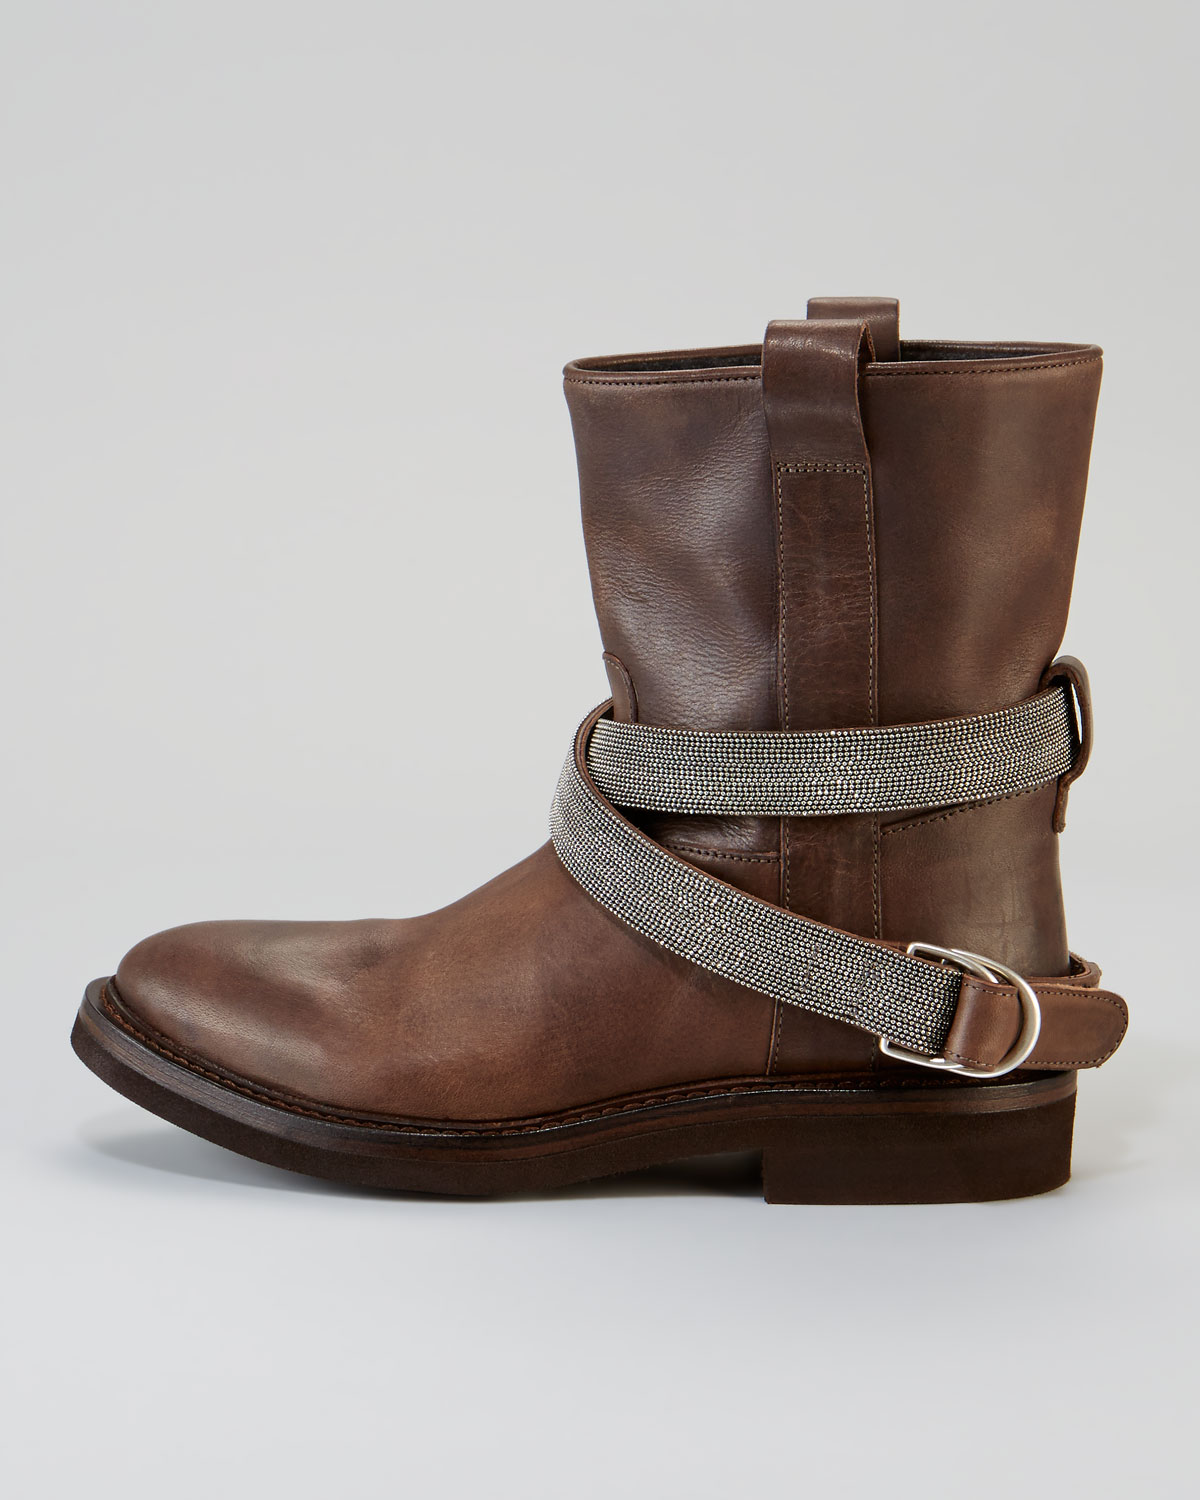 FOOTWEAR - Boots Brunello Cucinelli 2018 Cheap Price With Paypal Low Price Buy Cheap Eastbay Chx8FgVO3